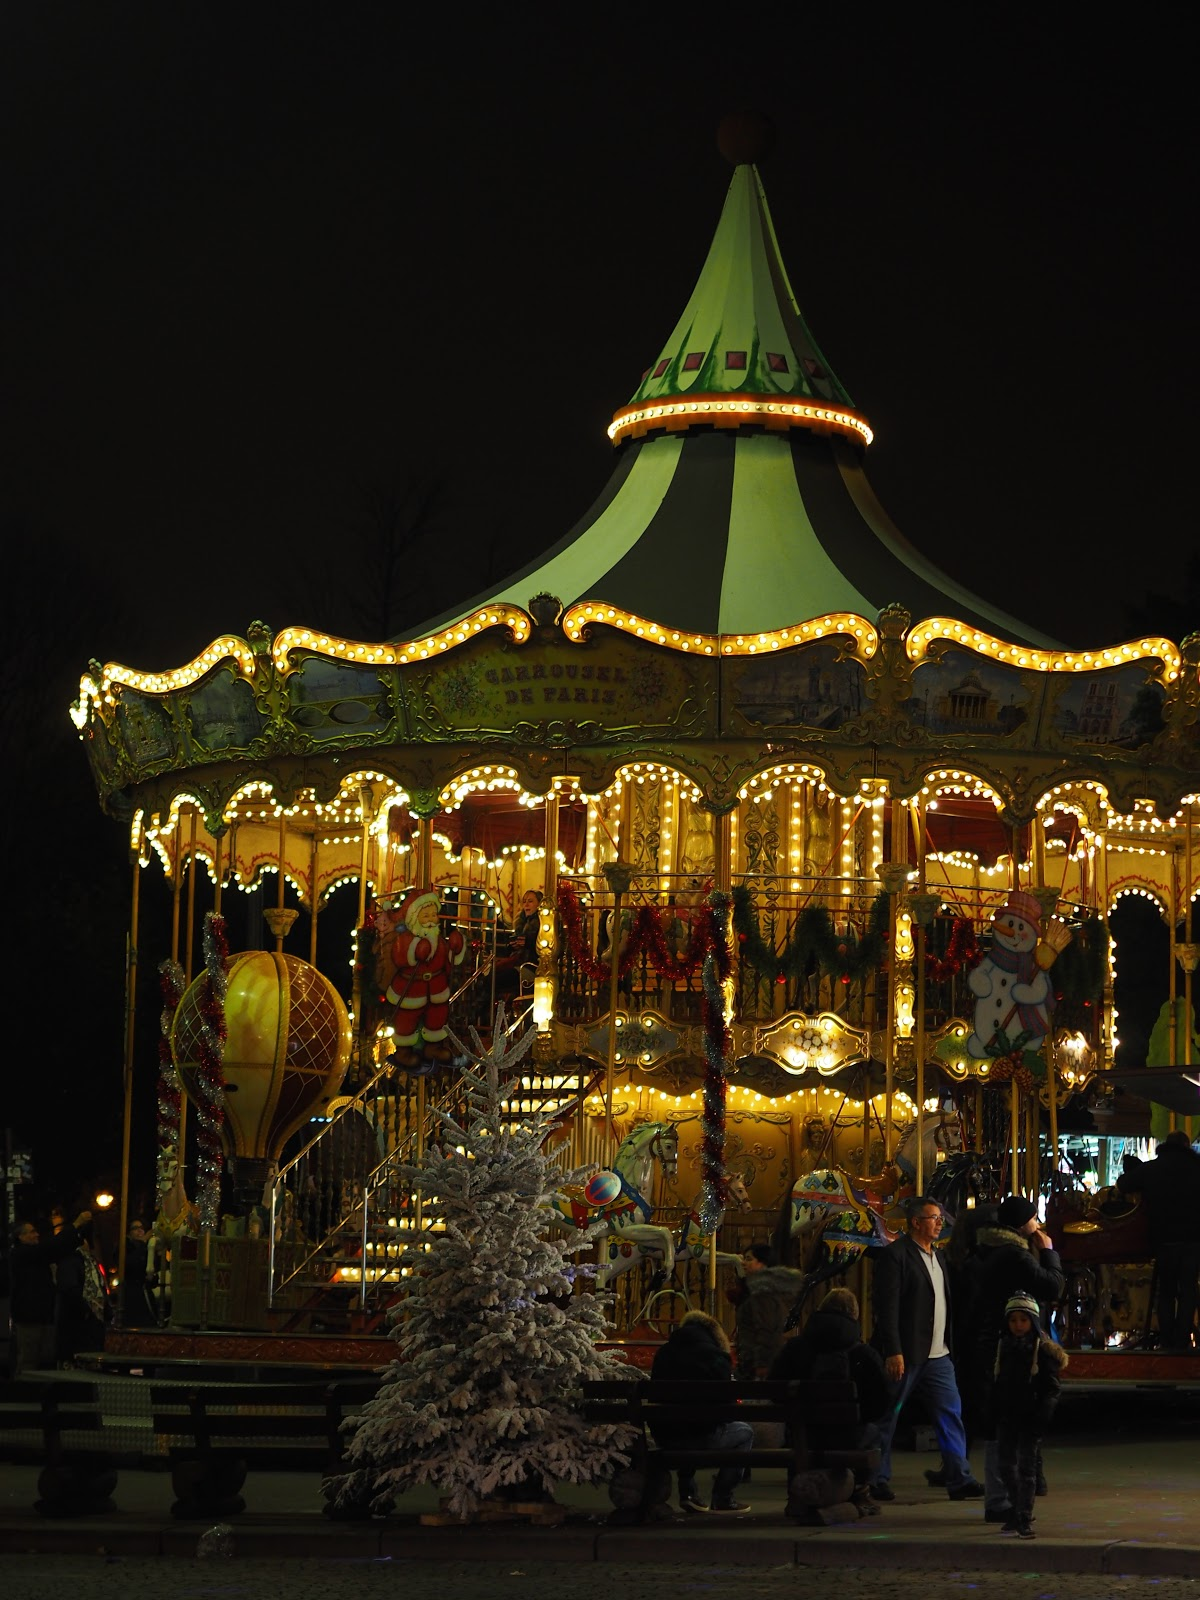 Merry-go-round in Paris at Christmas time, at night